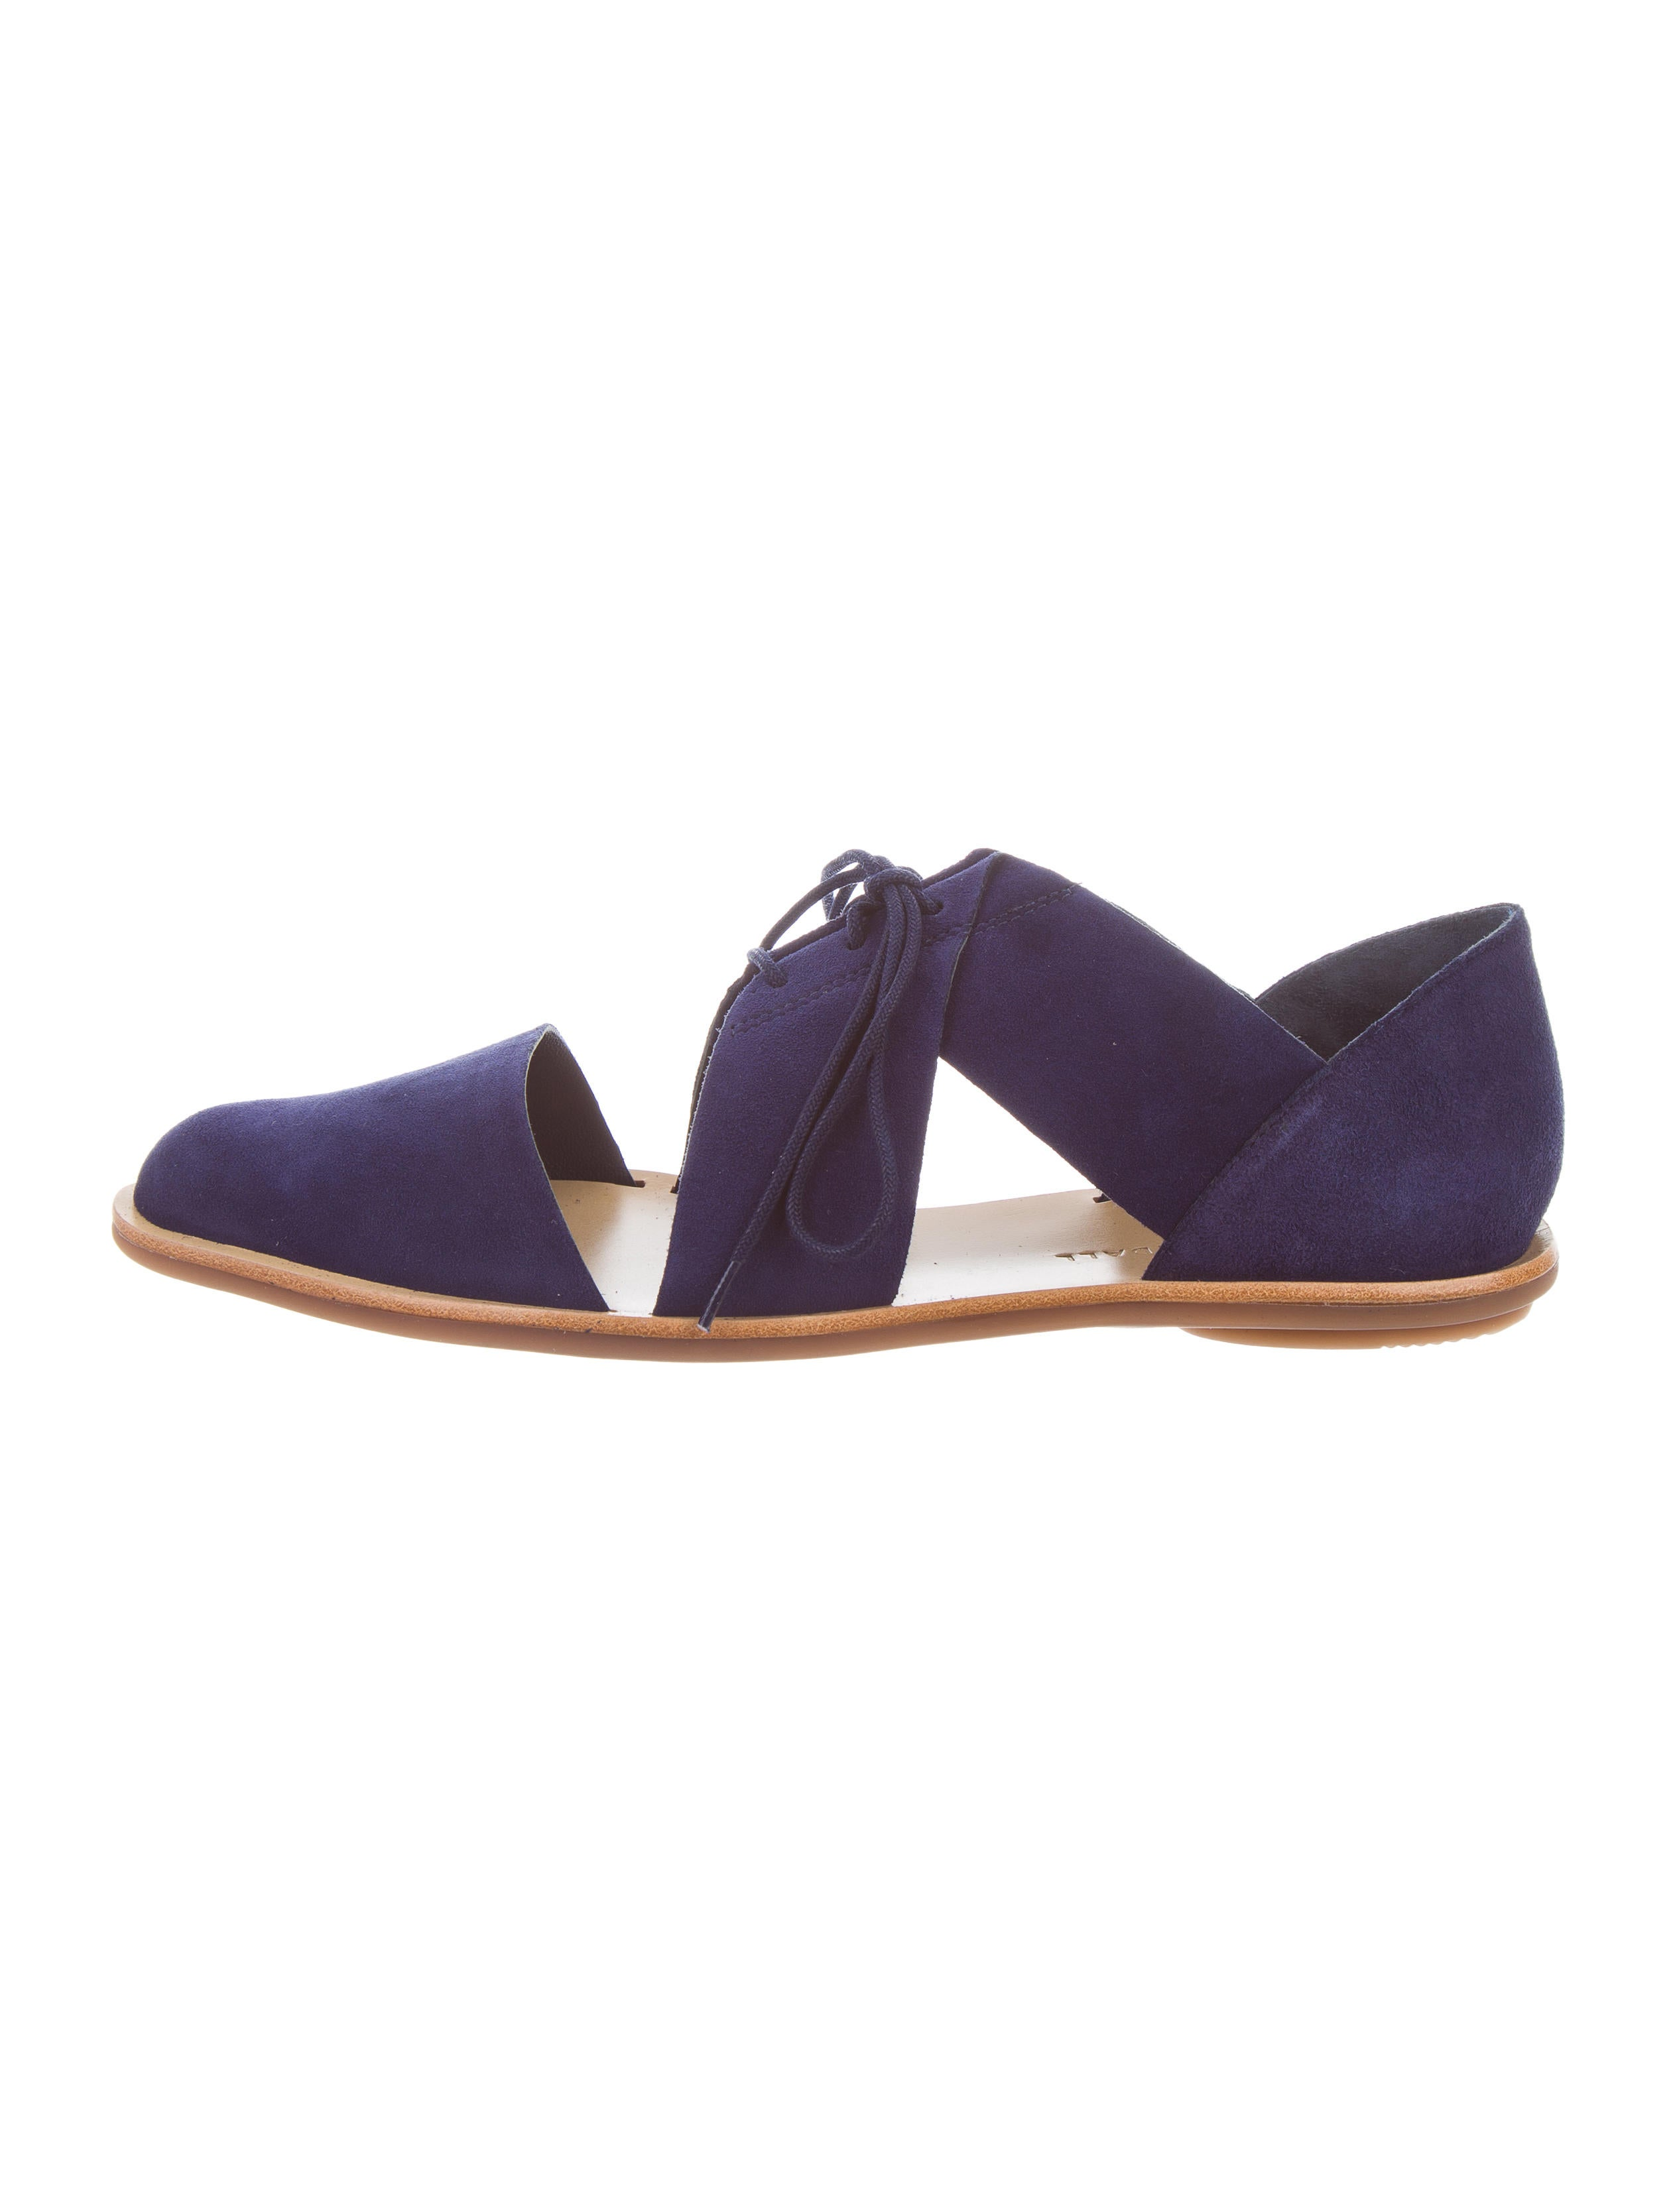 discount Manchester clearance 100% guaranteed Loeffler Randall 2018 Willa Suede Oxfords free shipping discount QQVcck